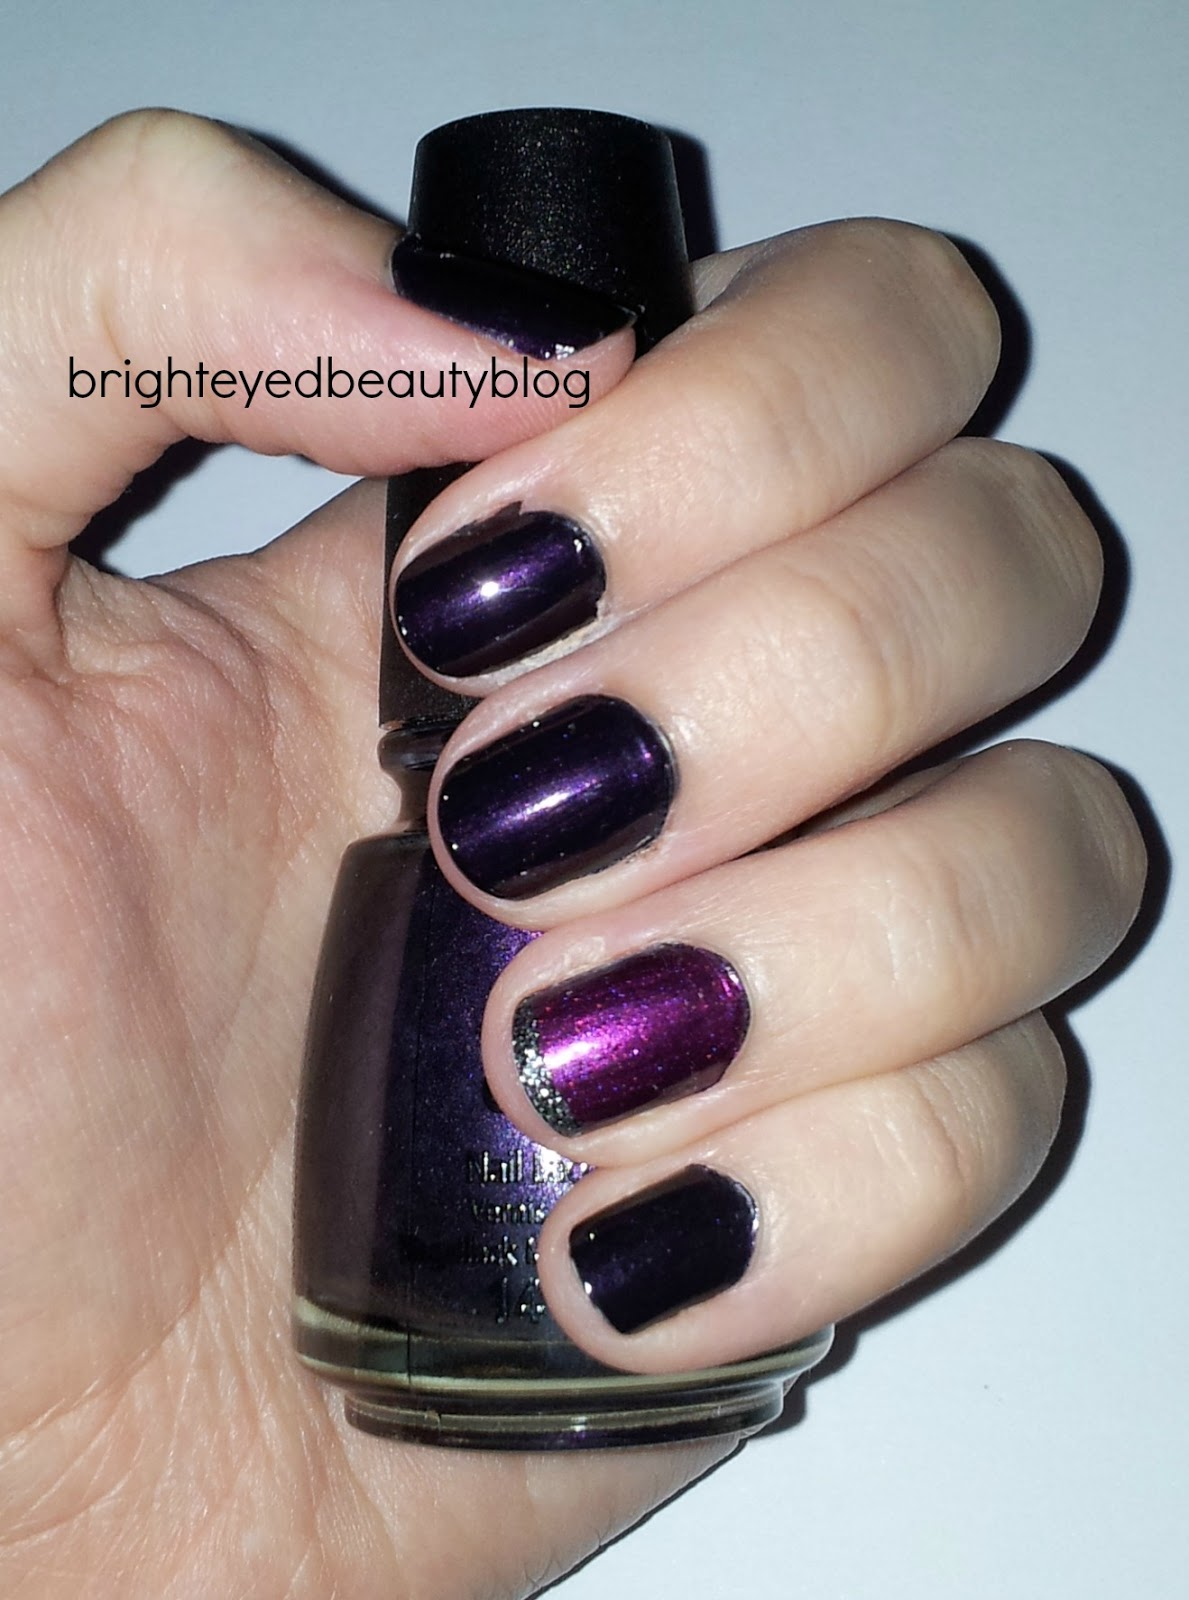 Swatch of China Glaze nail polish in Stella